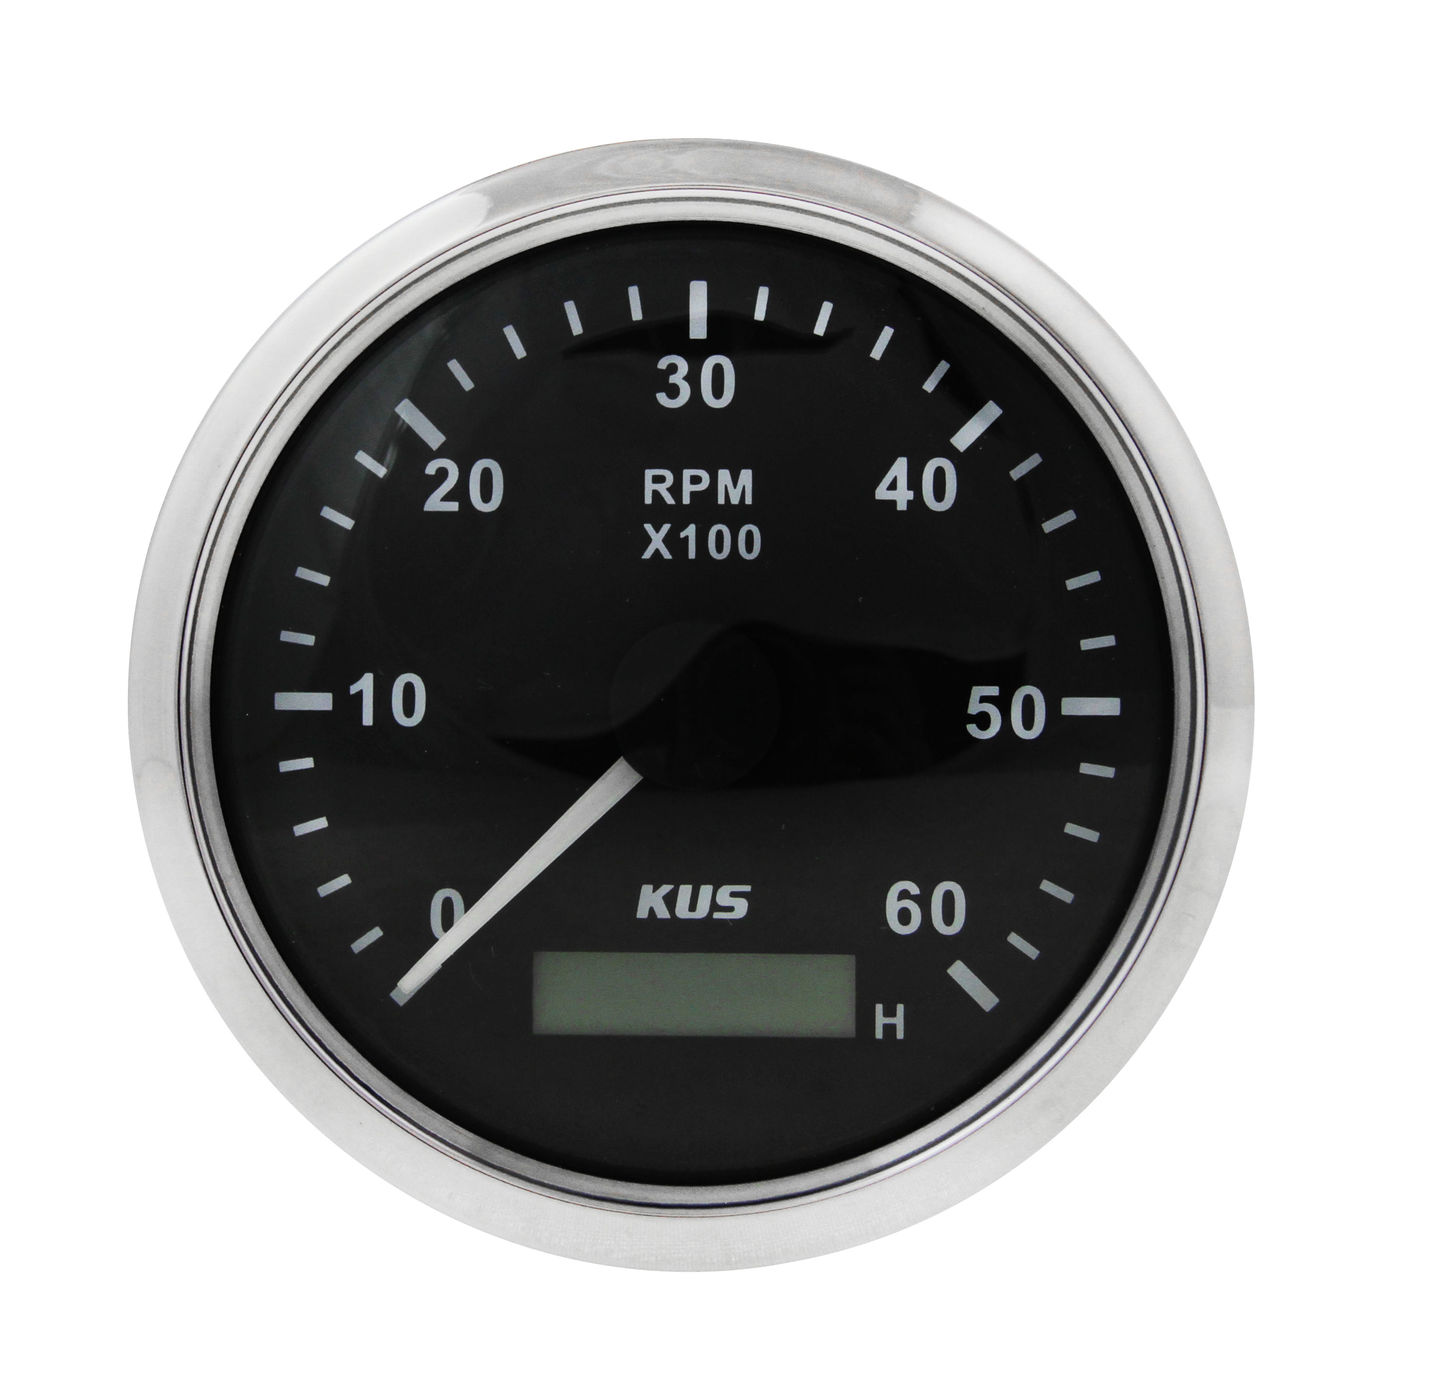 Tachometer 0-6000 Rpm With Hour Meter Divider 0.5-250, Black Dial, Stainless Bezel, D. 85mm Ky07000